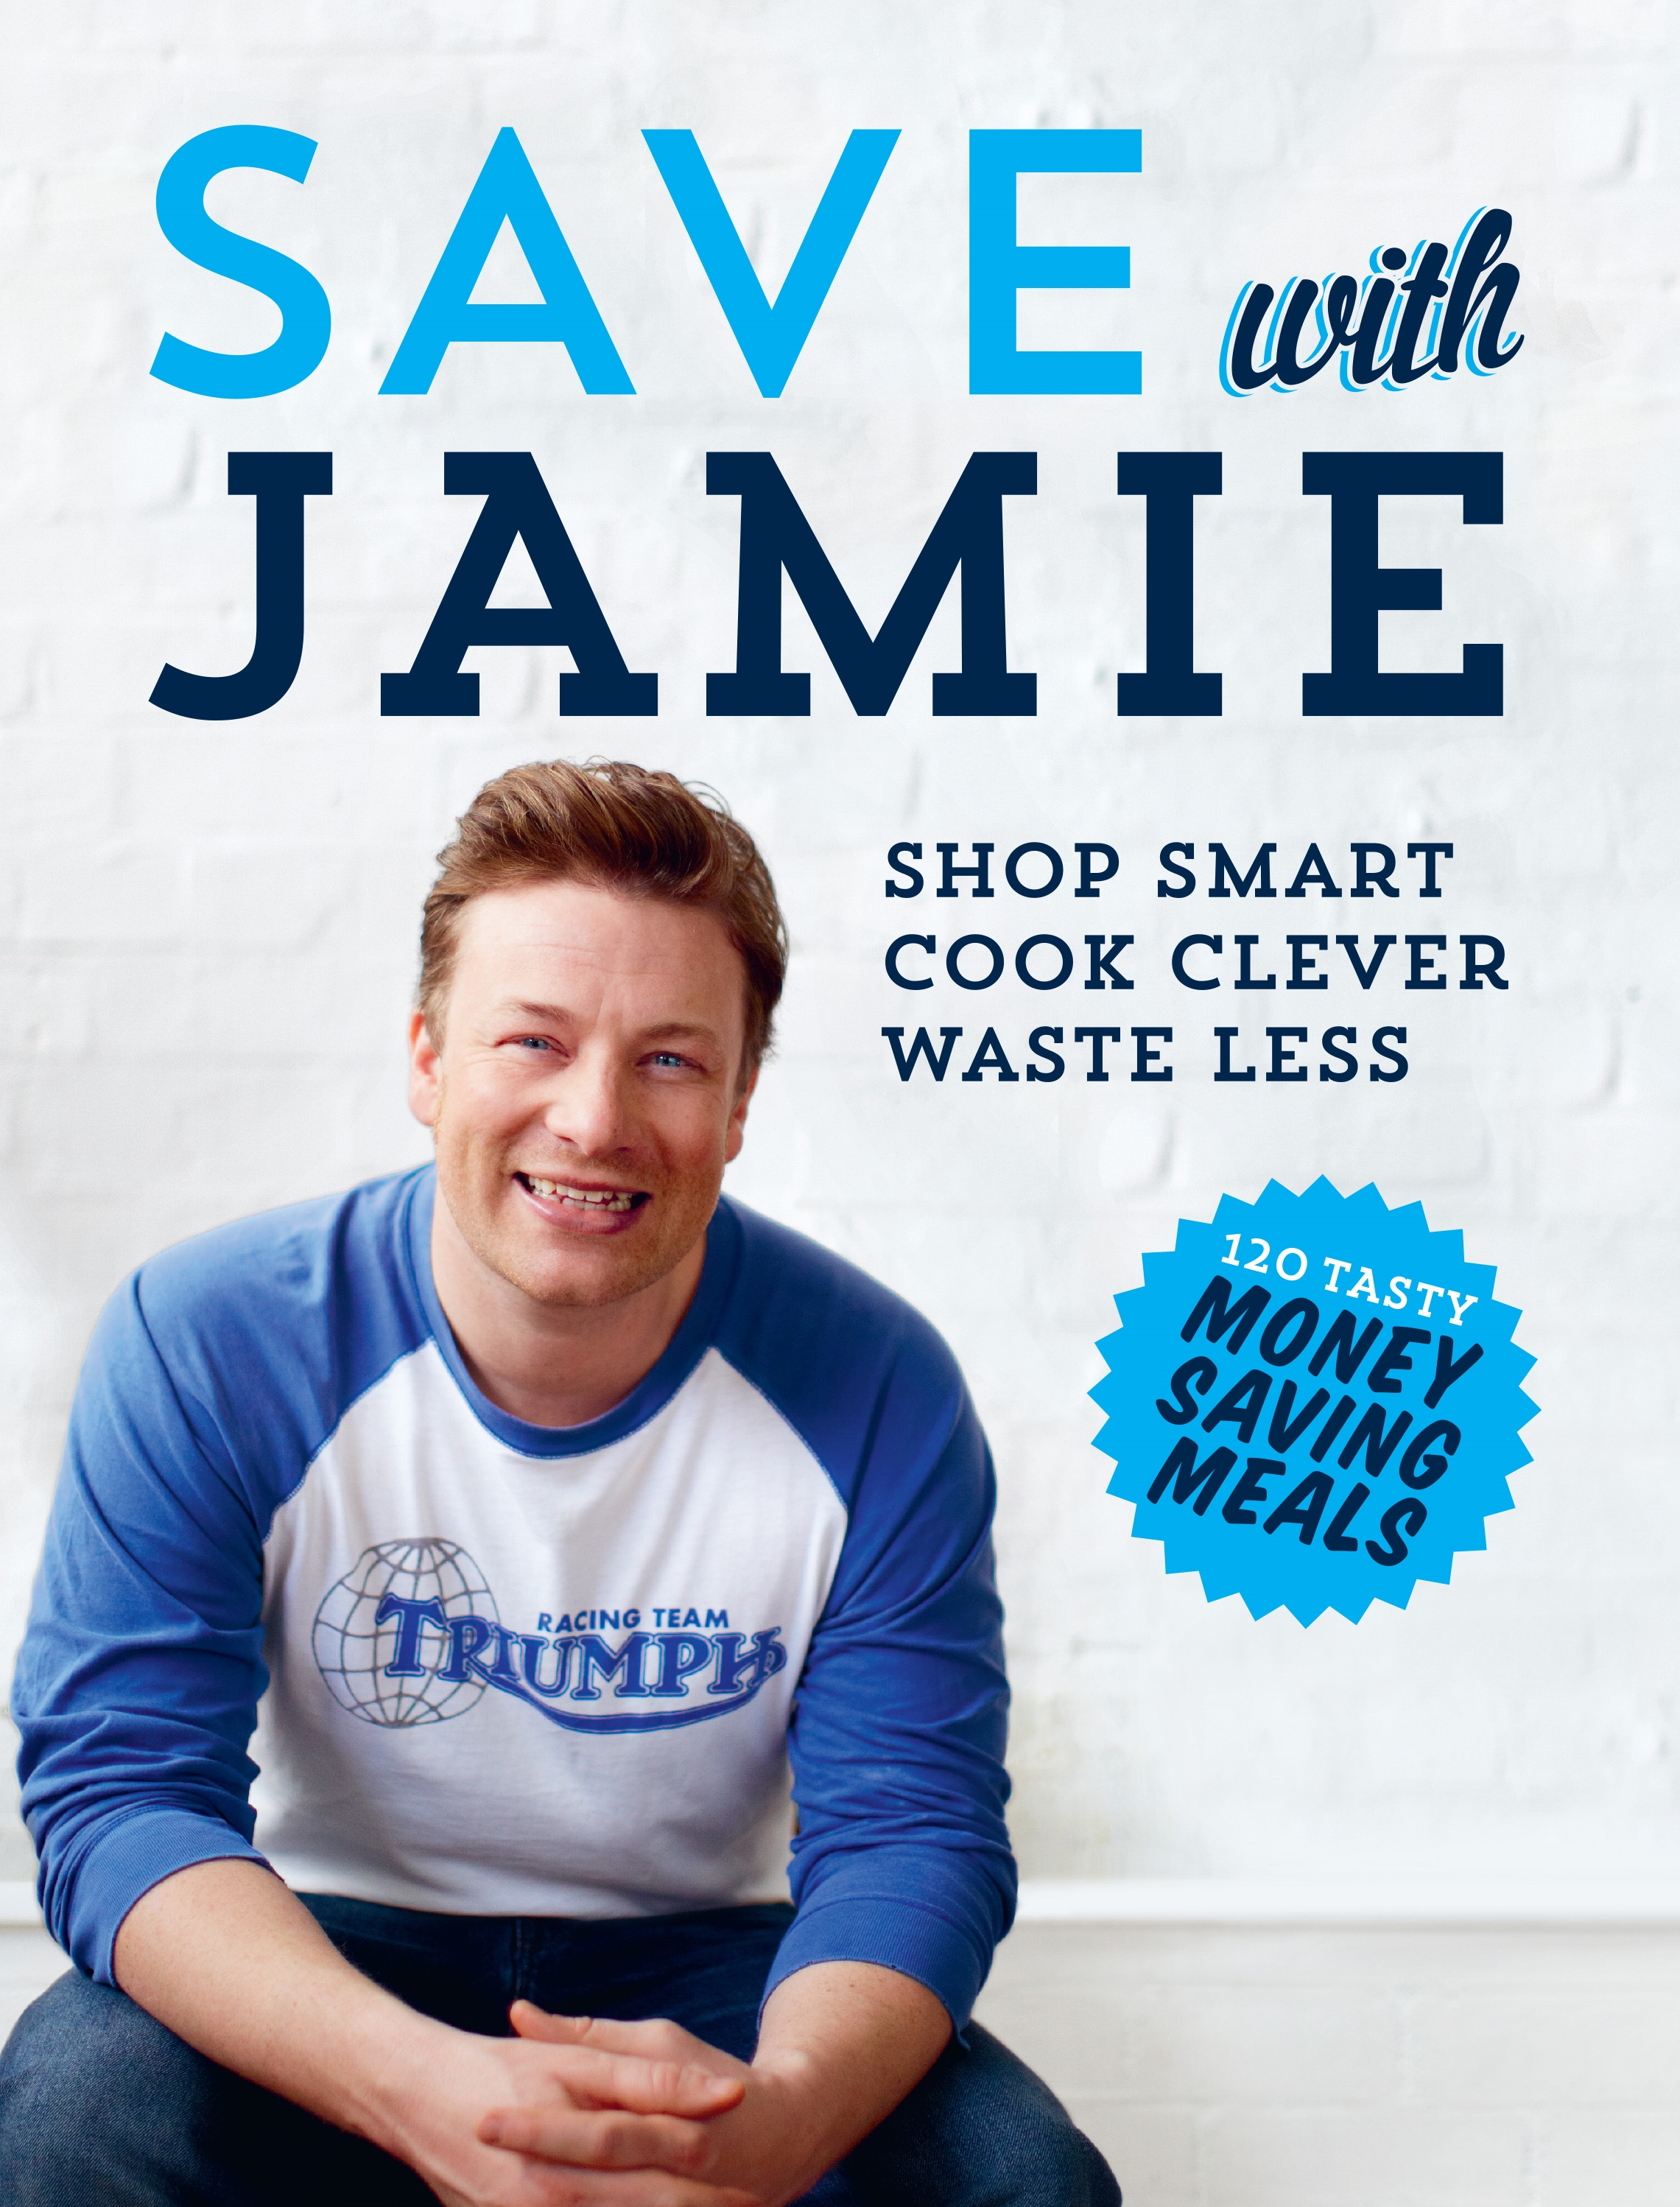 'Save with Jamie' by Jamie Oliver